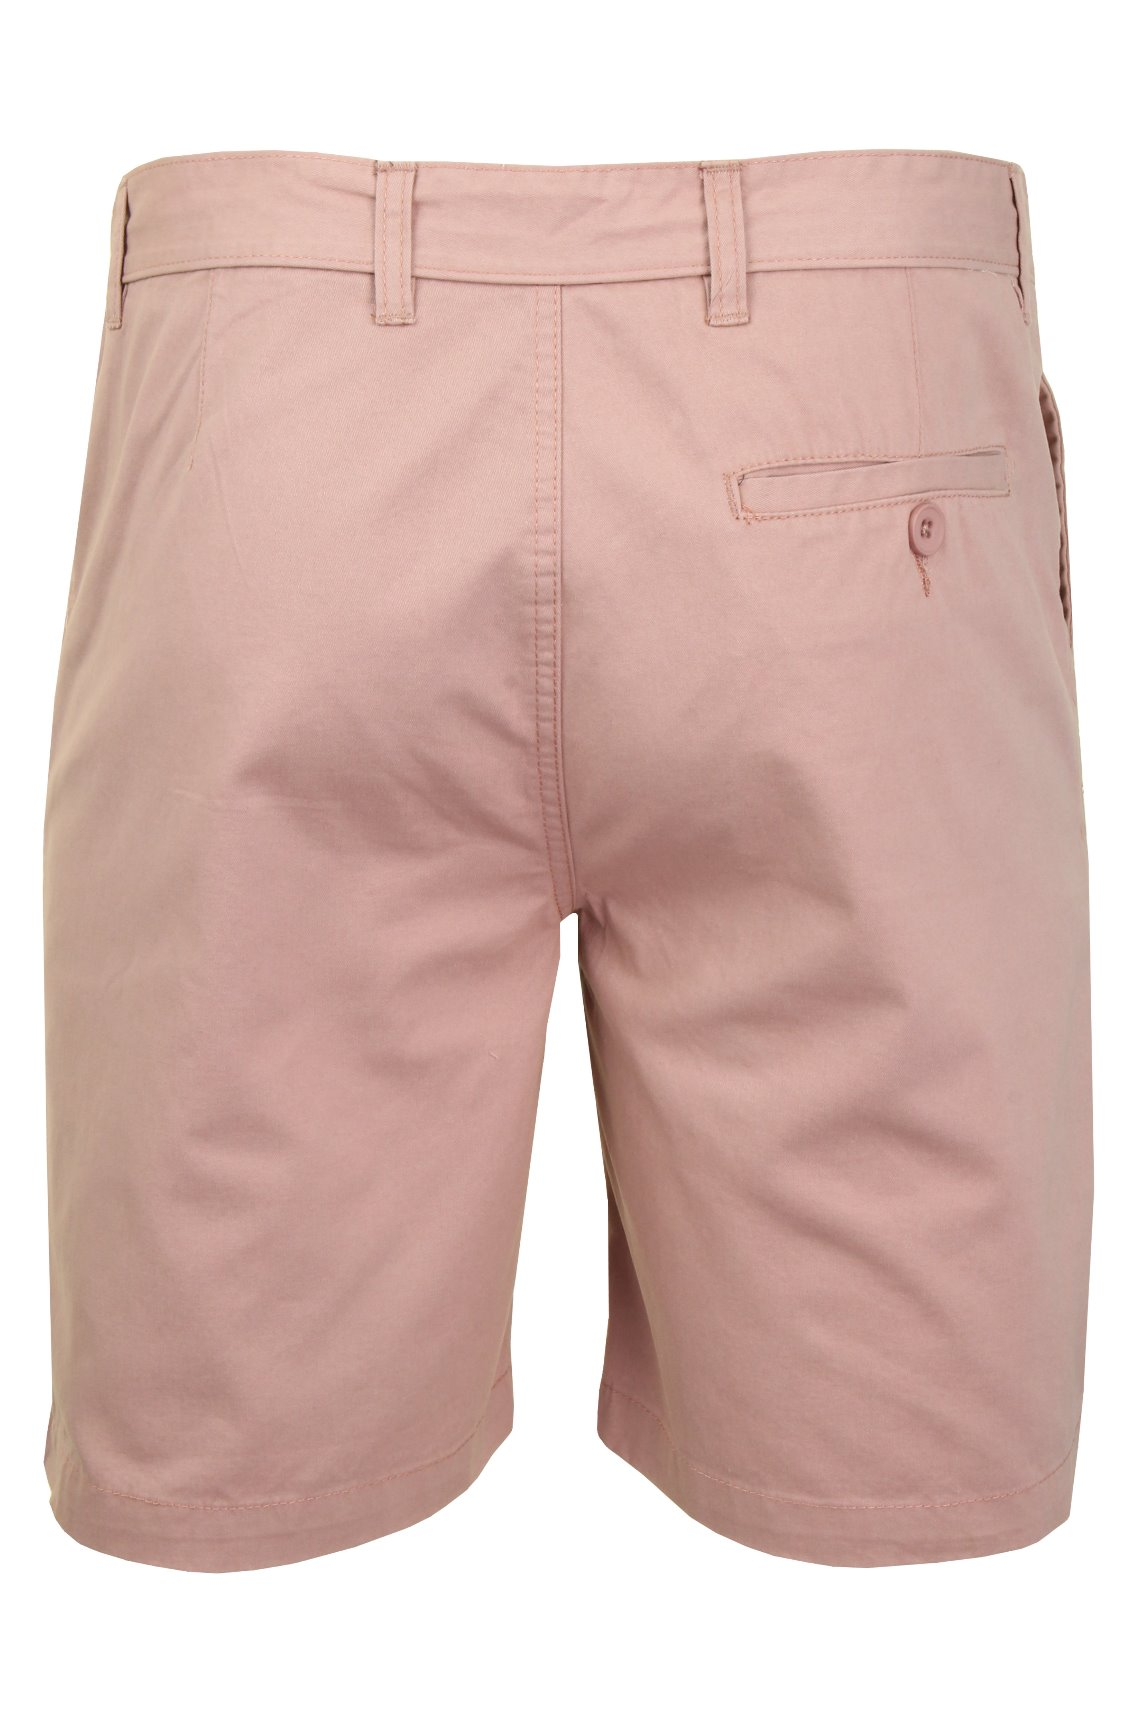 Xact-Chino-Shorts-Mens-Soft-Feel-Cotton-Fashion-Garment thumbnail 11